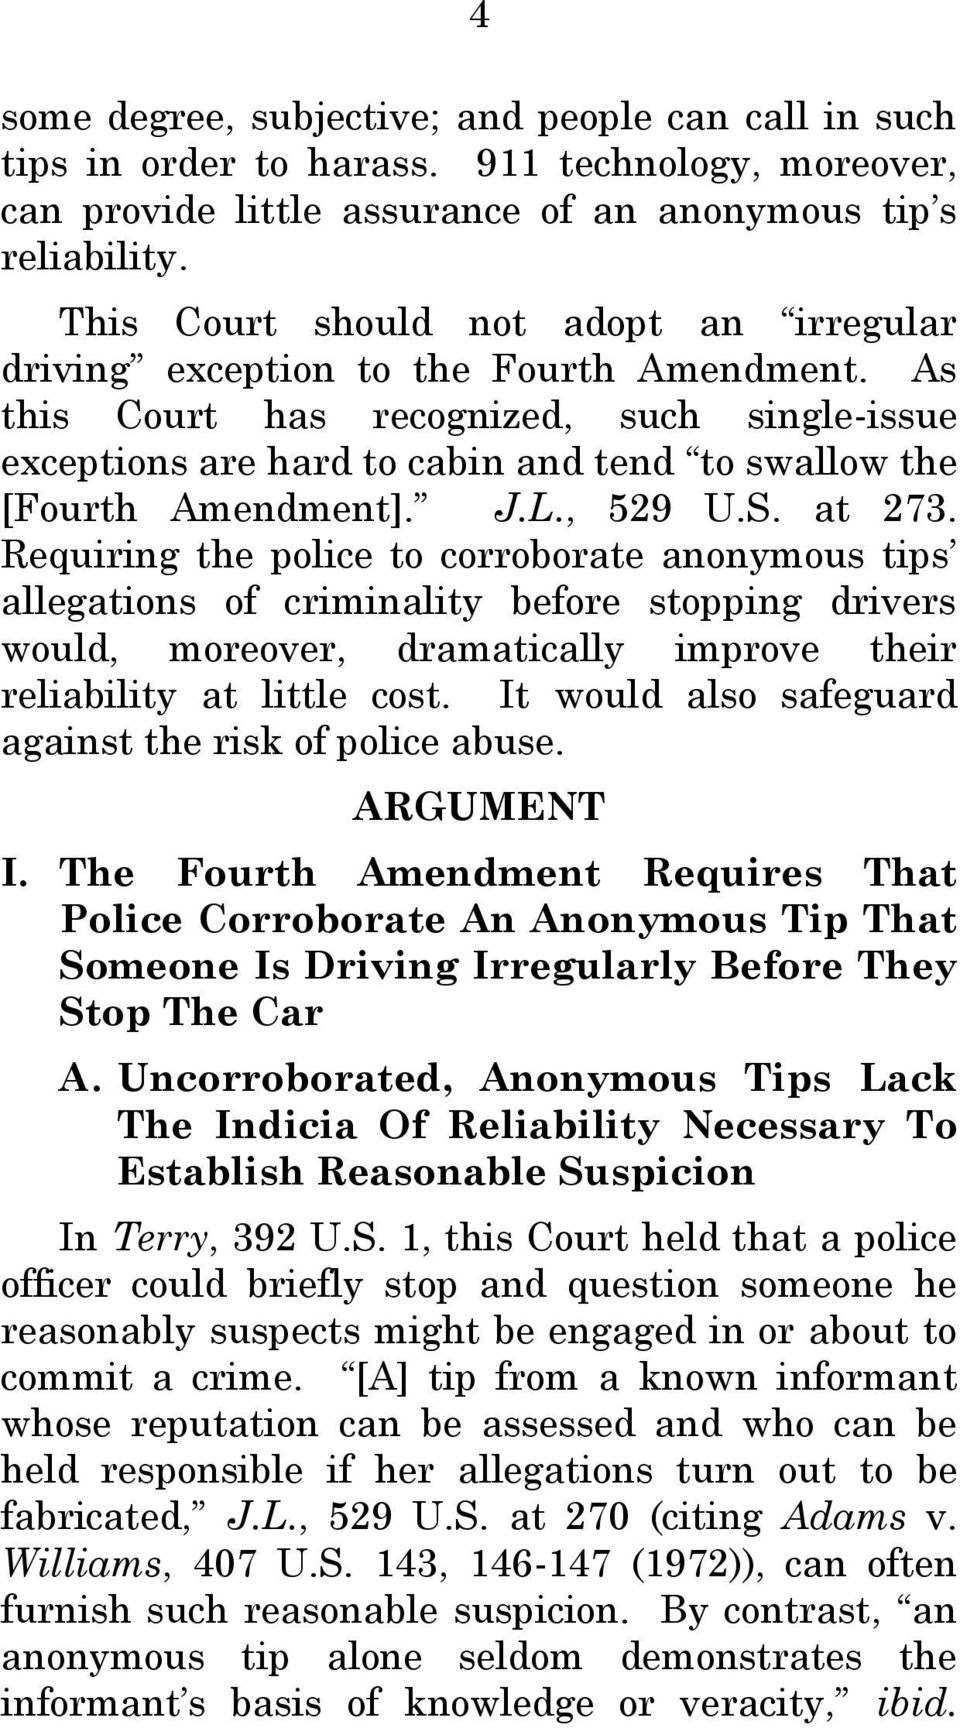 As this Court has recognized, such single-issue exceptions are hard to cabin and tend to swallow the [Fourth Amendment]. J.L., 529 U.S. at 273.